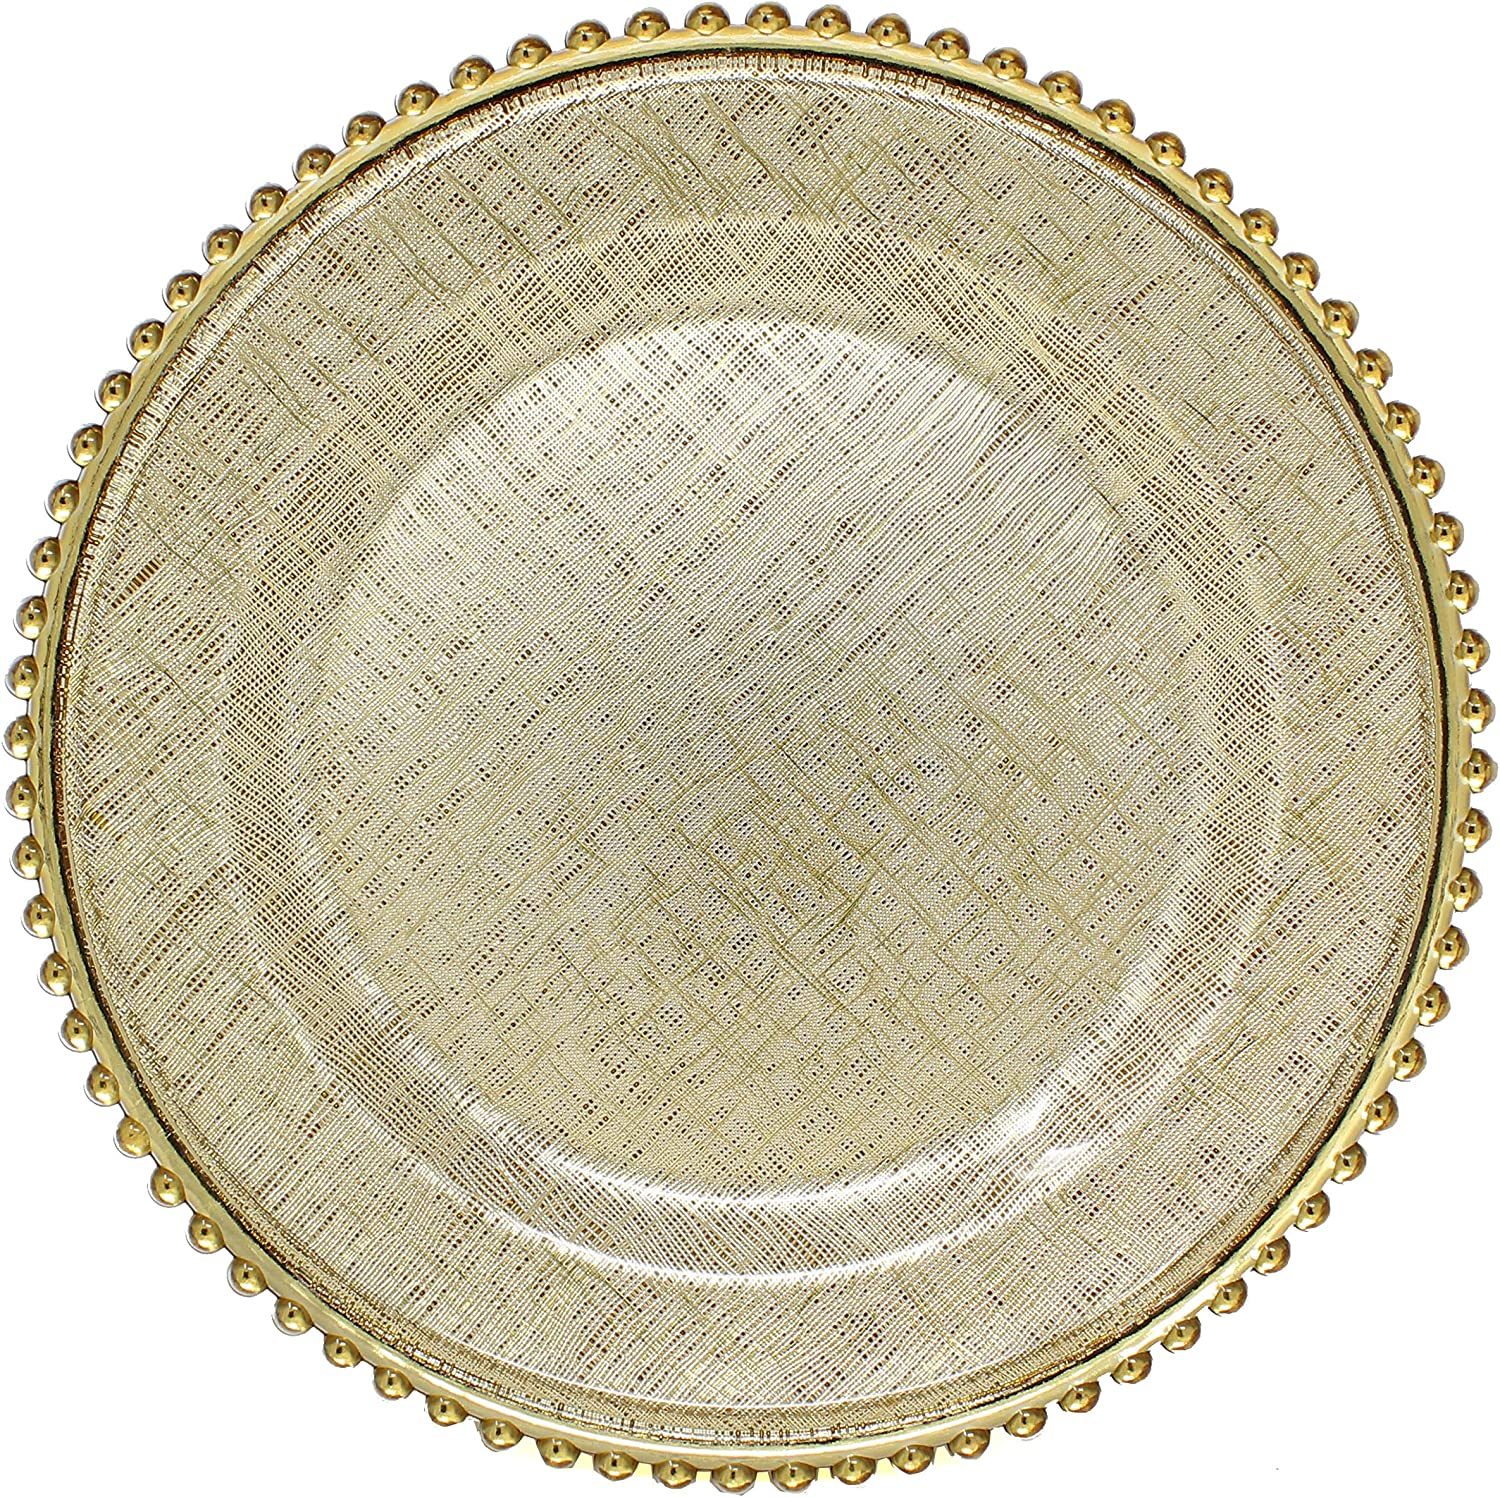 Cross-stitch Pattern Glass Charger 13 Inch Plate Dinner Bea Dealing full price reduction With Branded goods